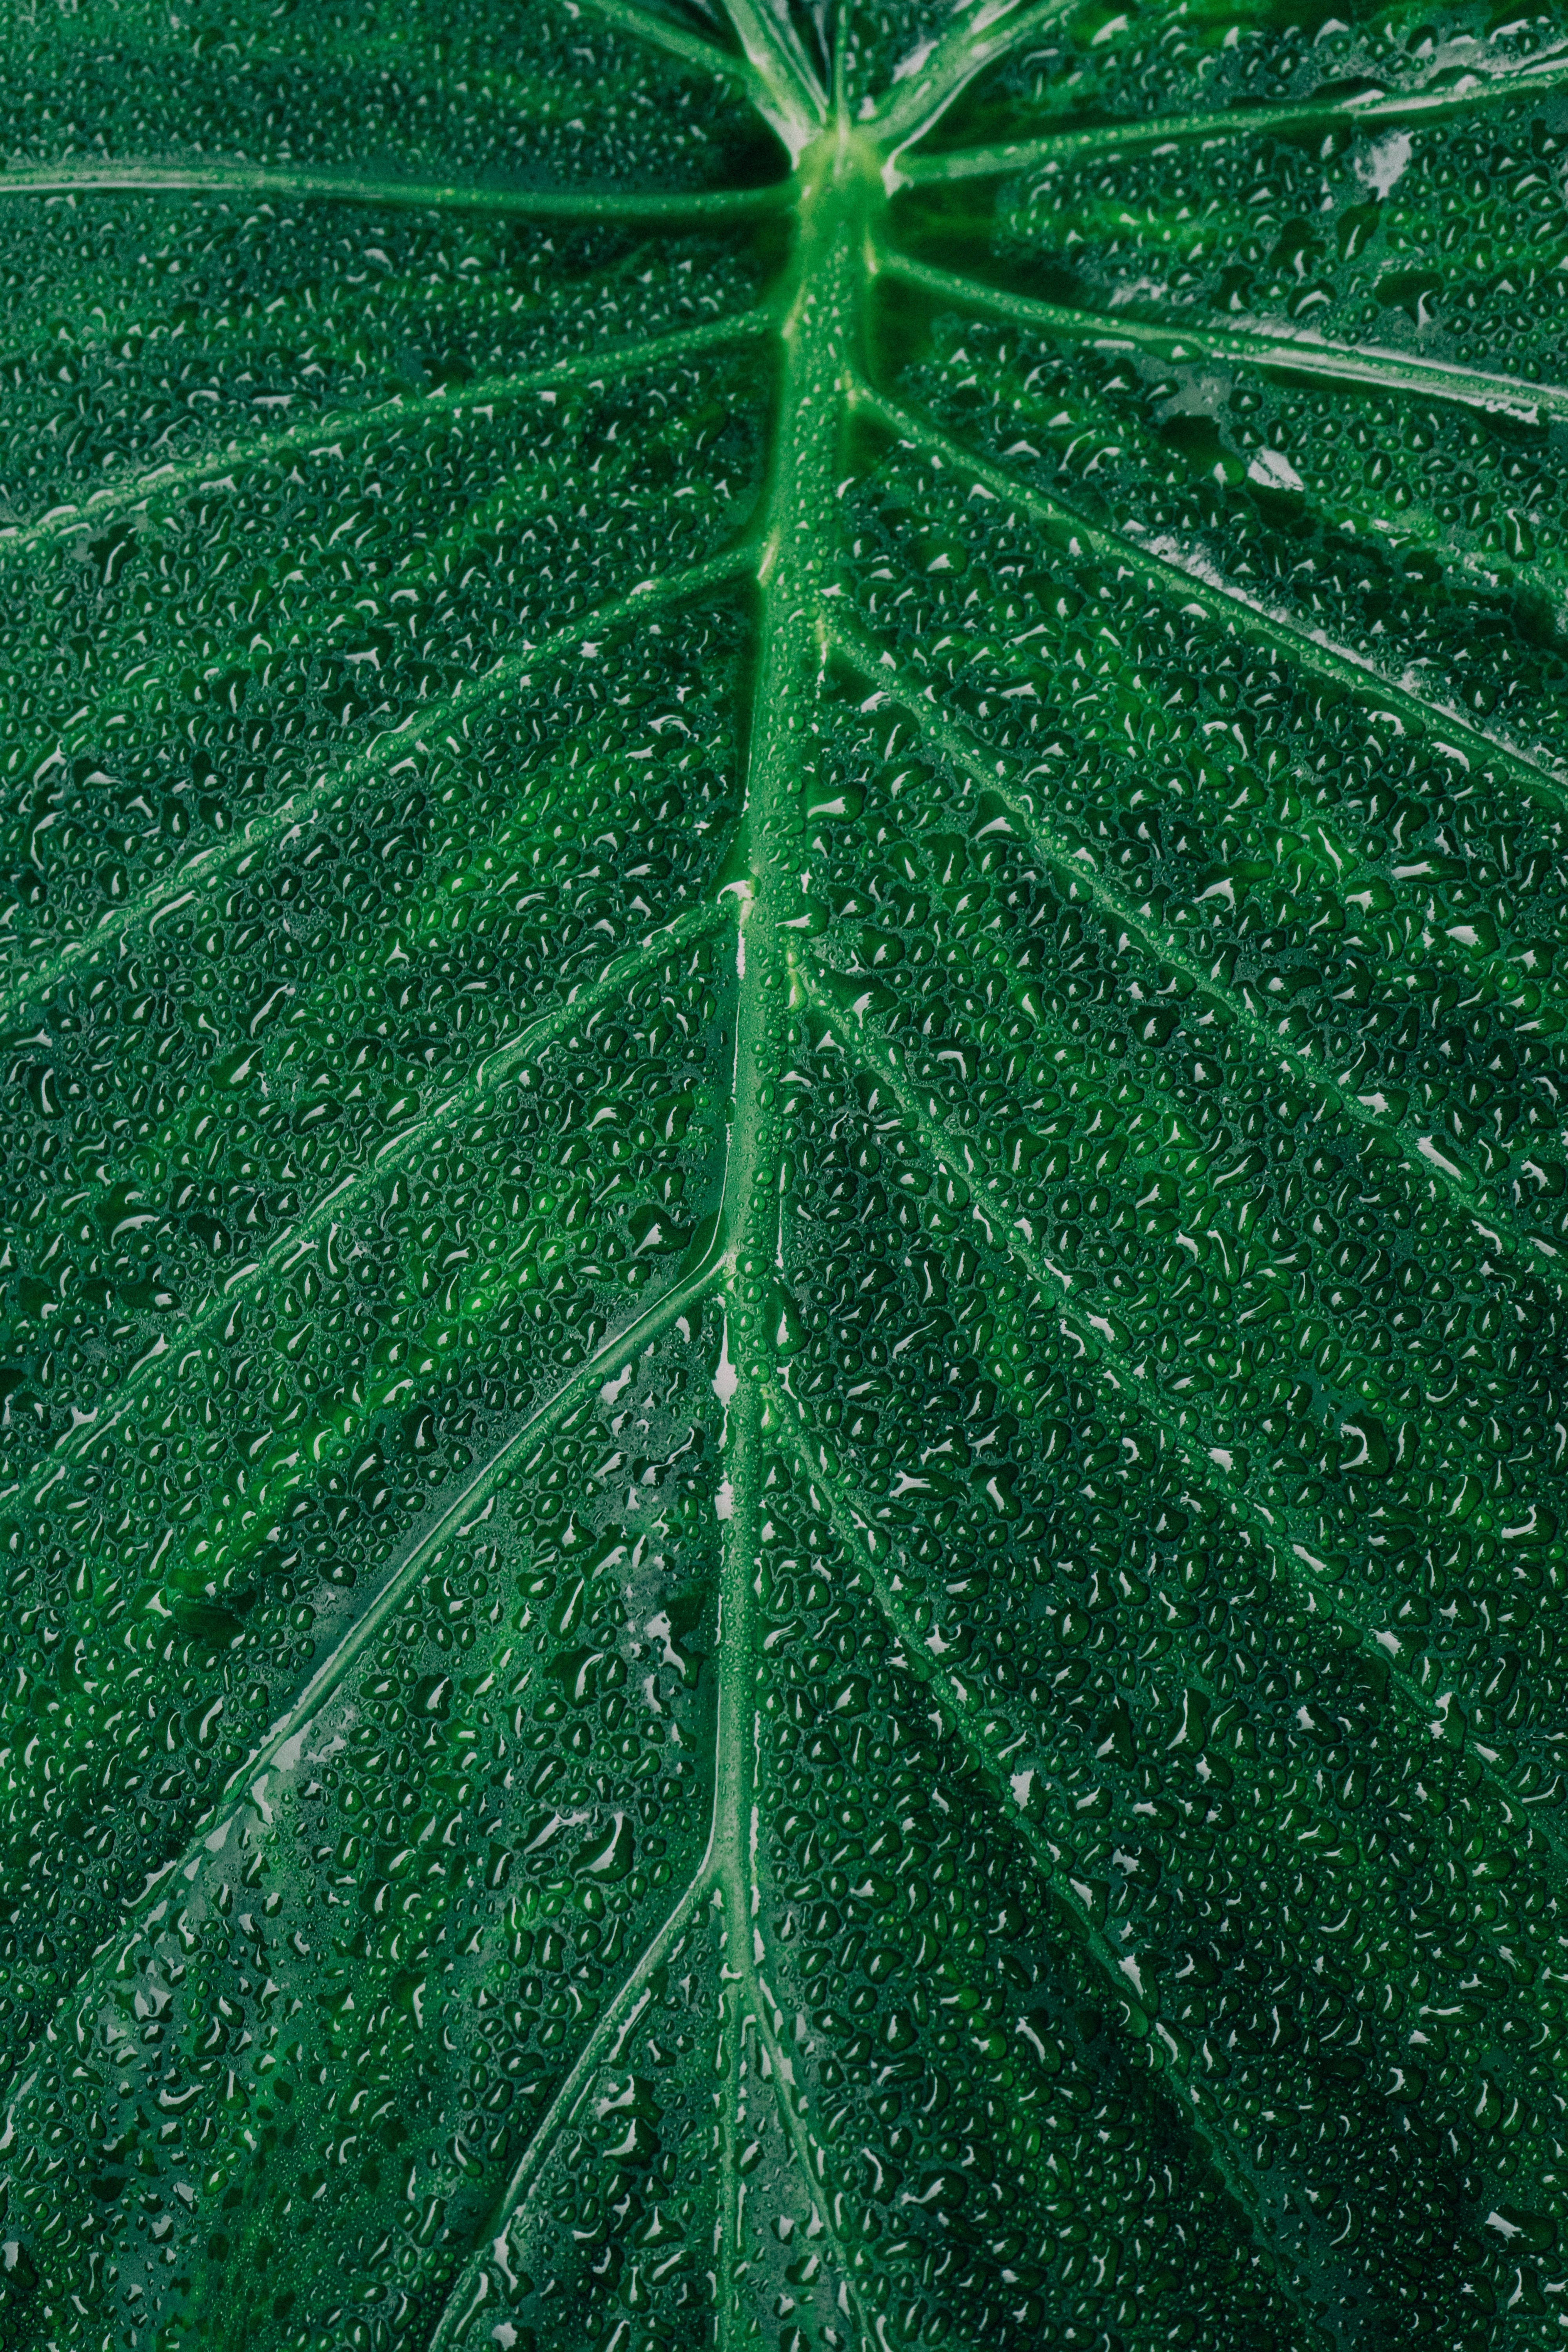 Close-up Photography of Dewdrops on Leaf